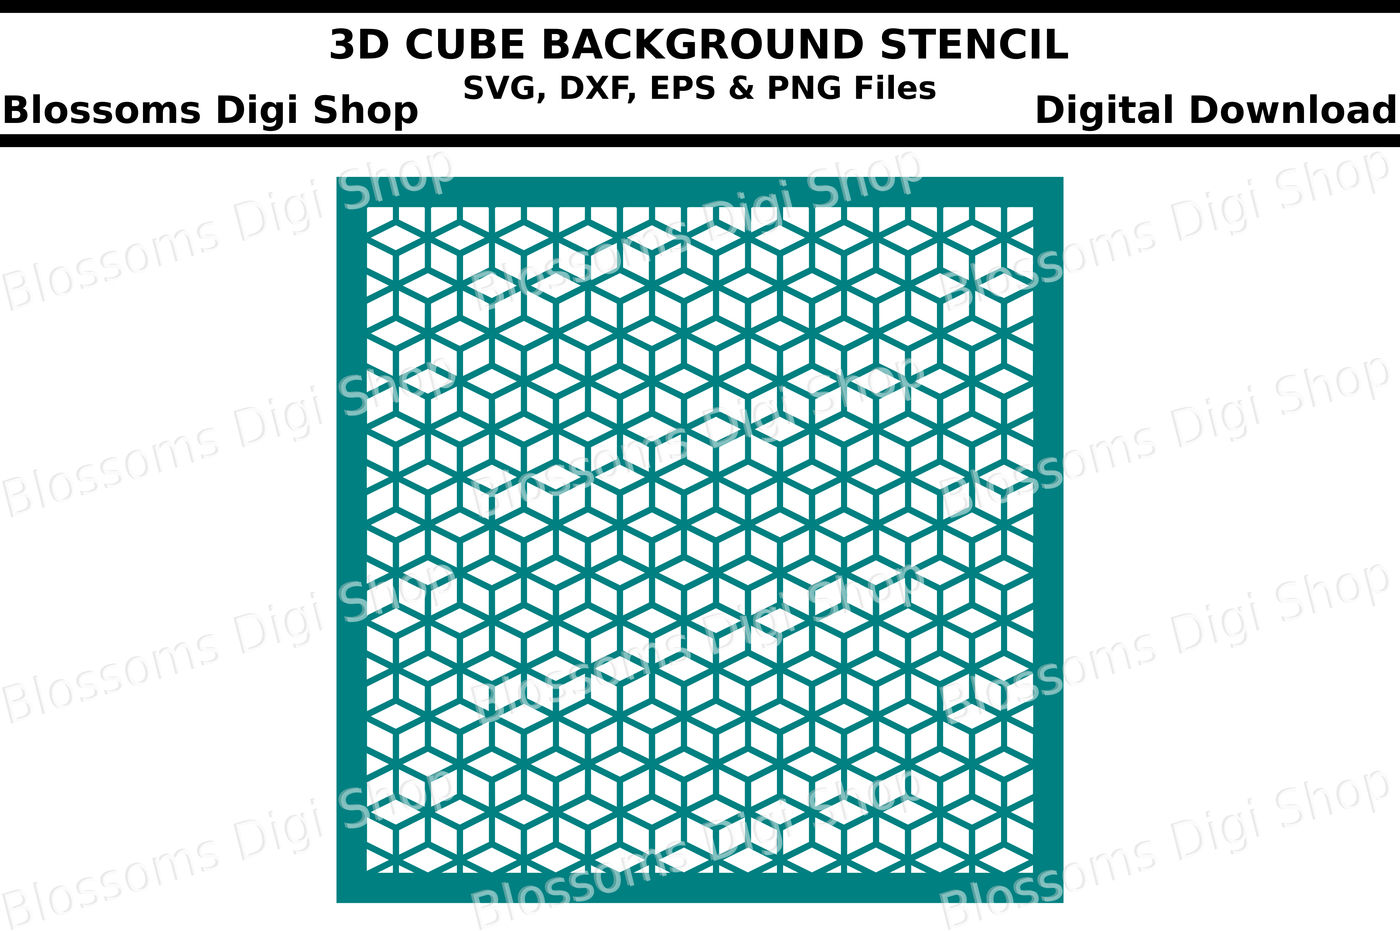 3d Cube Background Stencil Svg Dxf Eps And Png Files By Blossoms